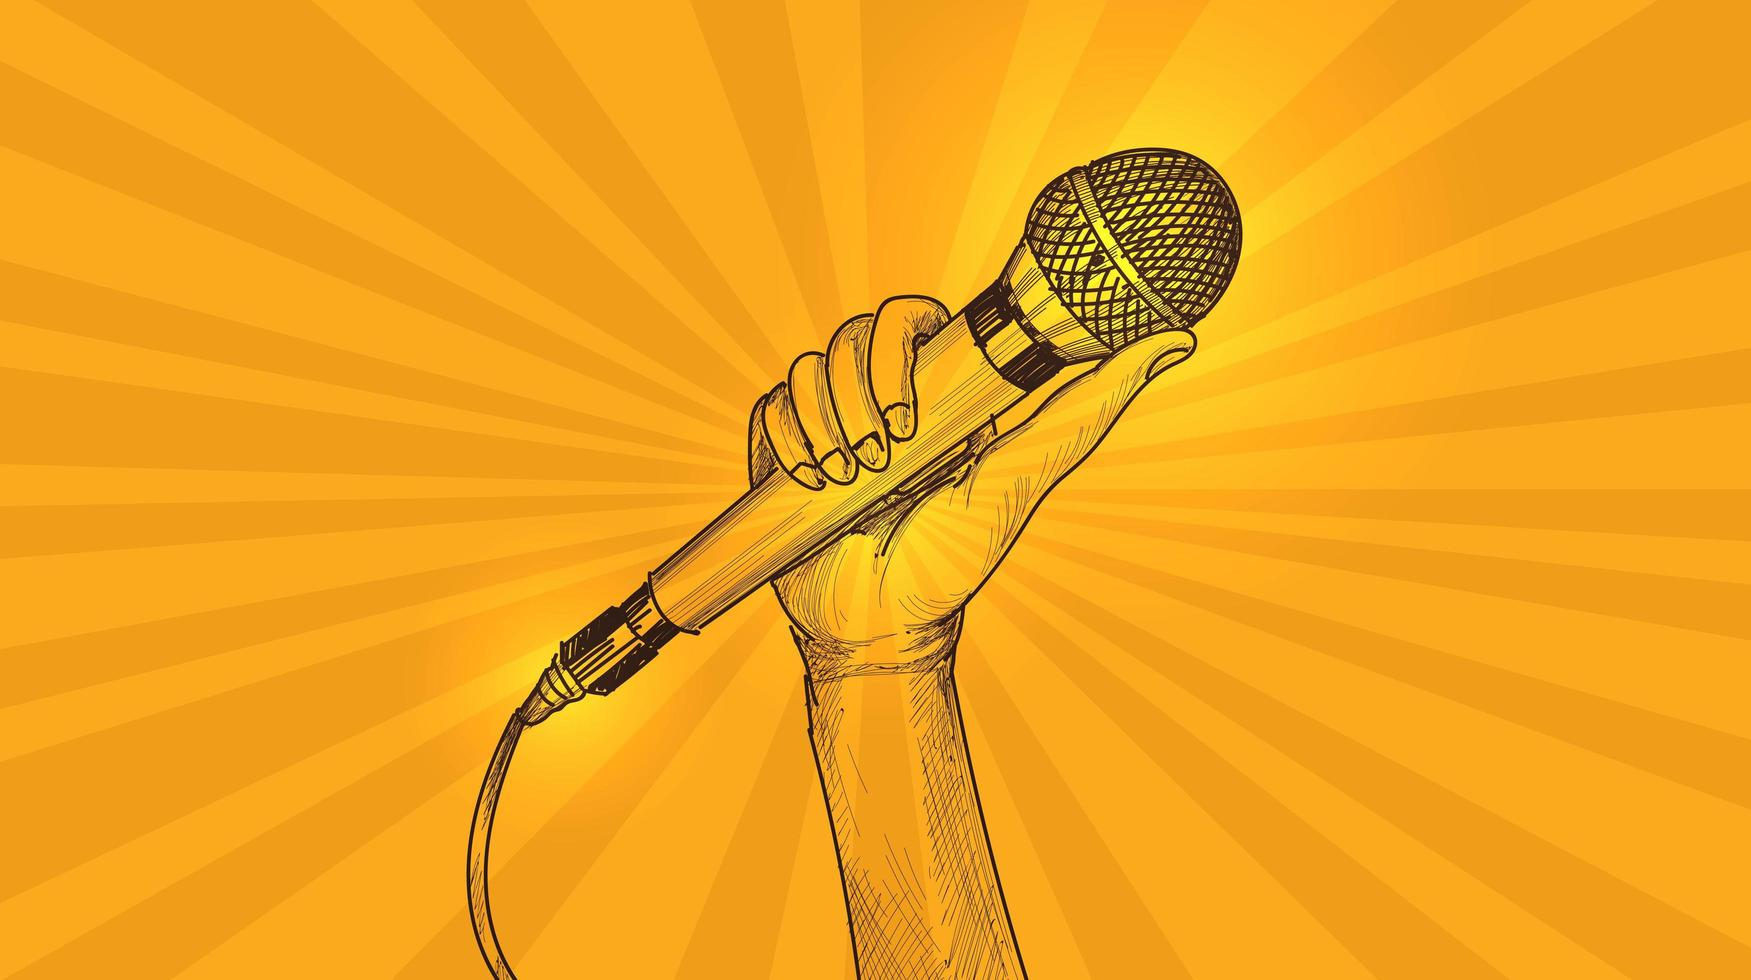 Hand with Microphone Sketch Yellow background vector